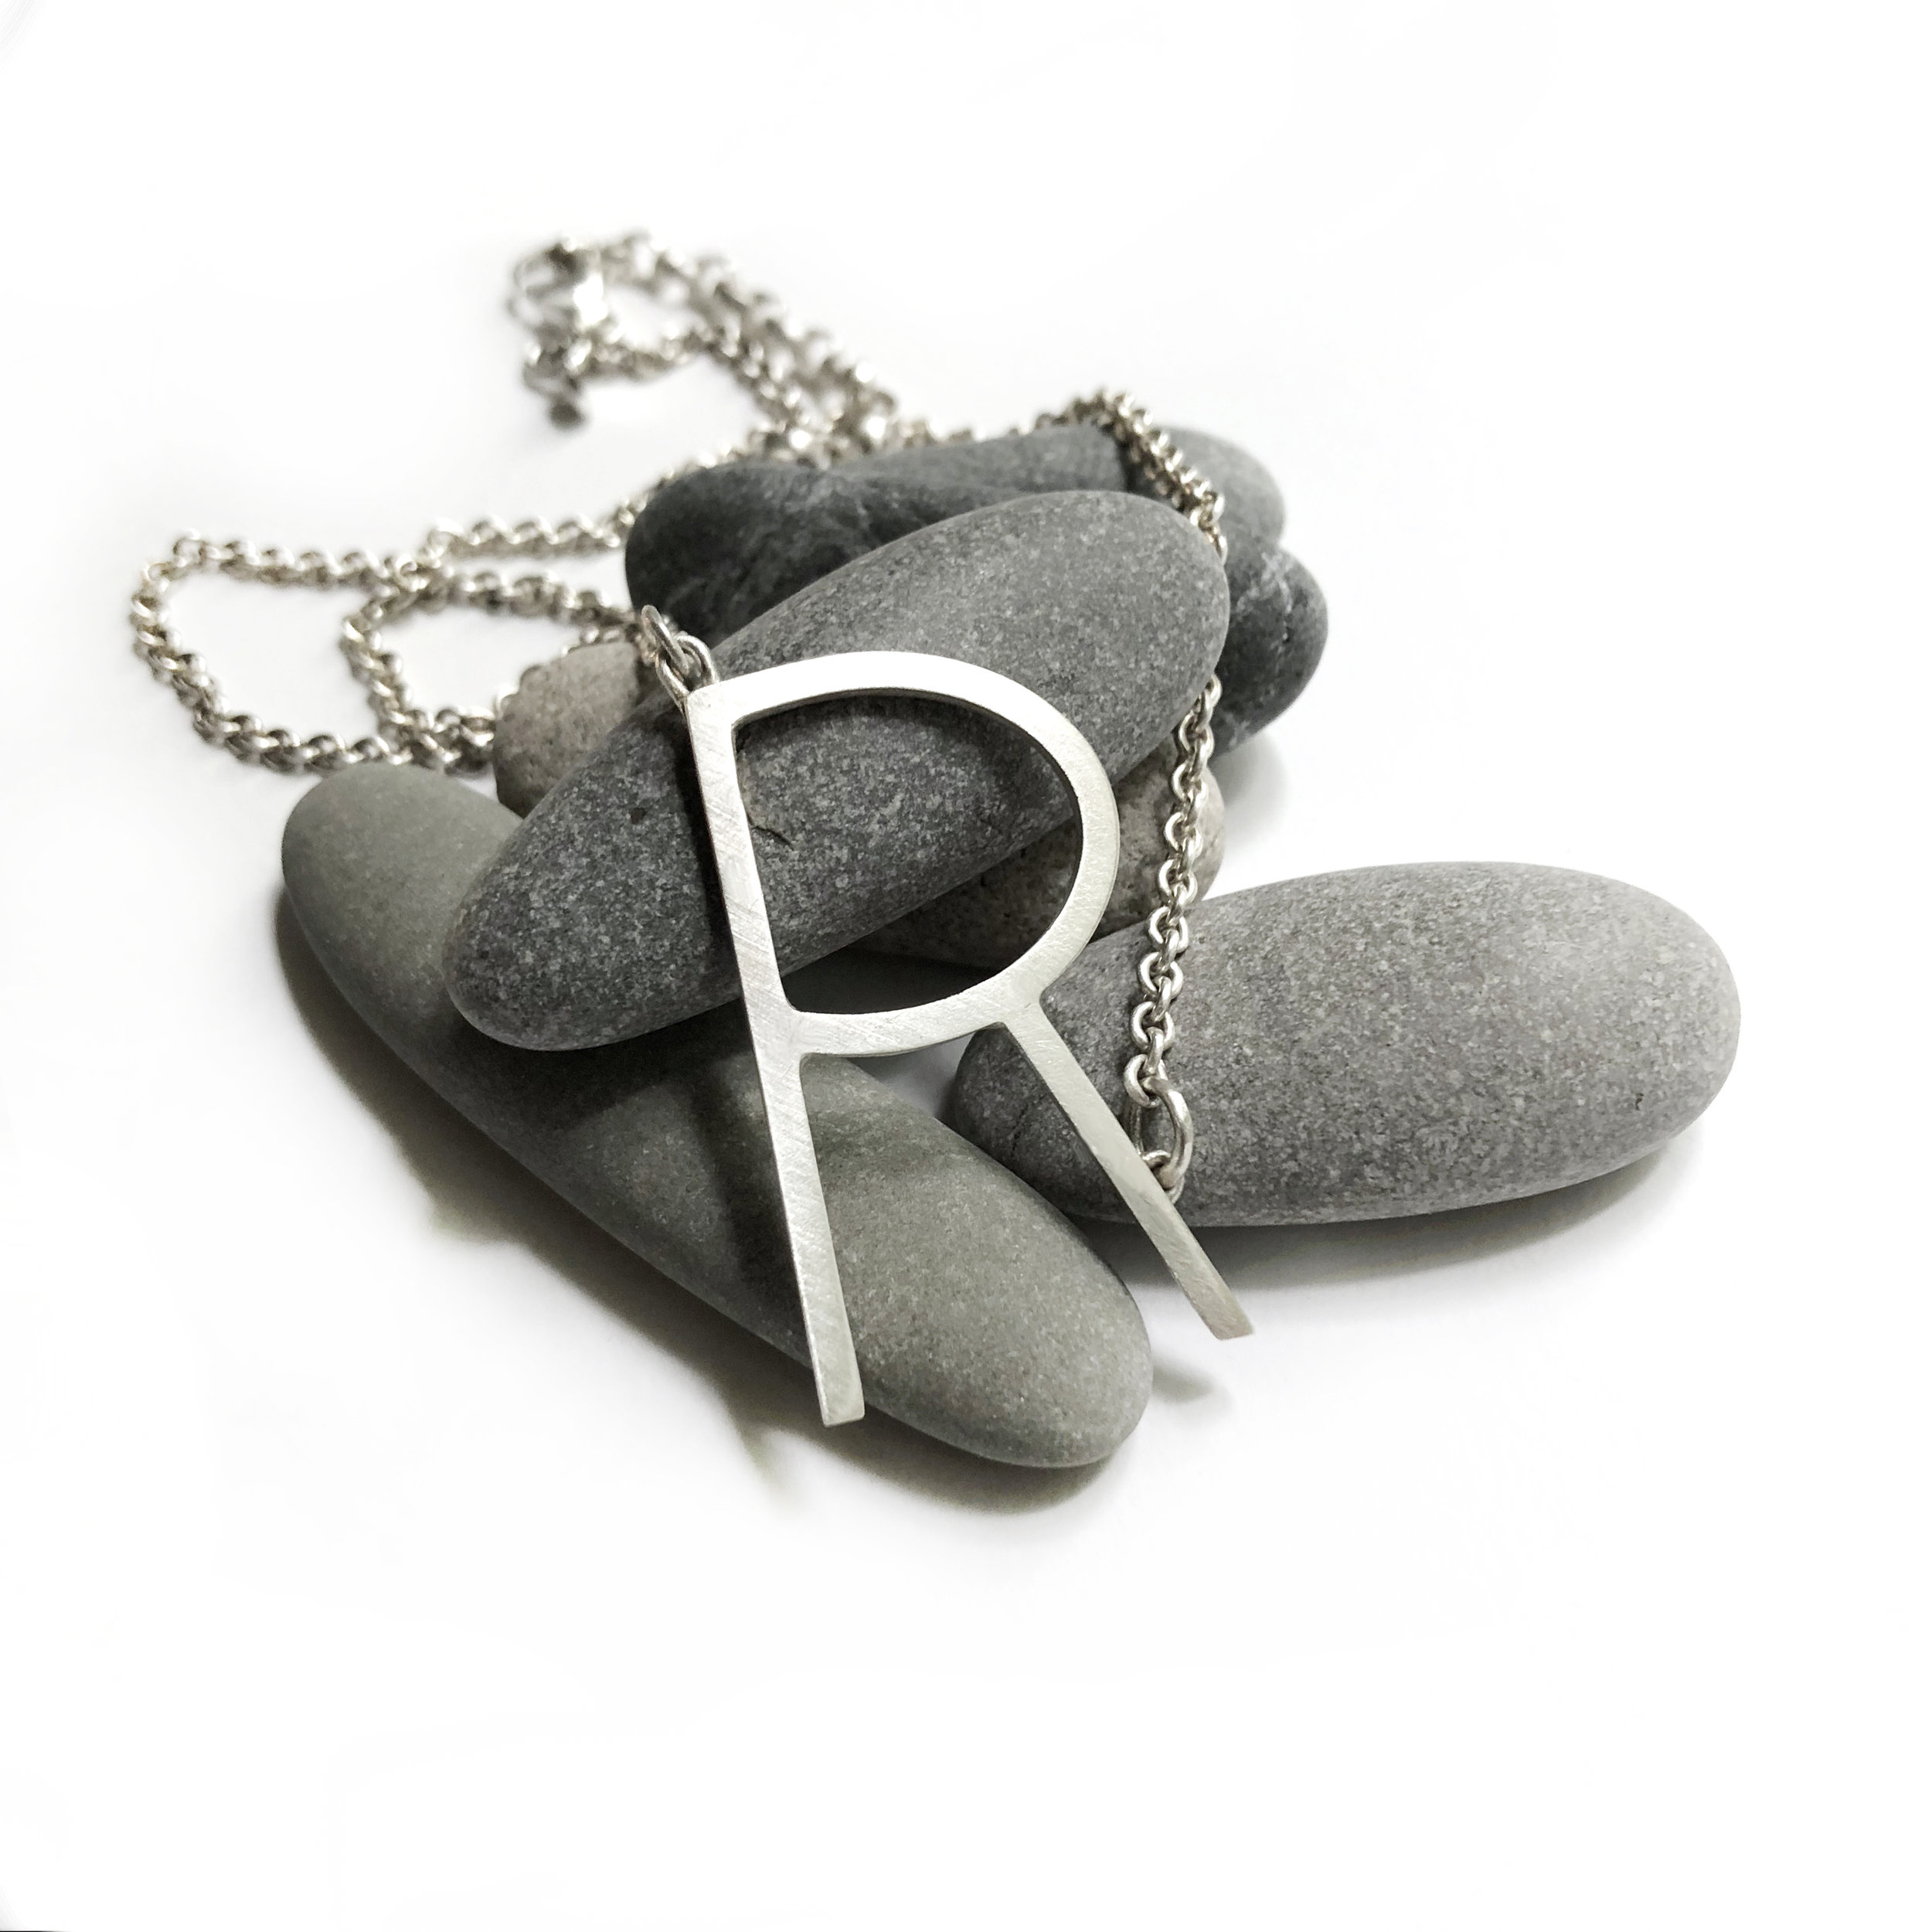 overside initial R necklace sterling silver